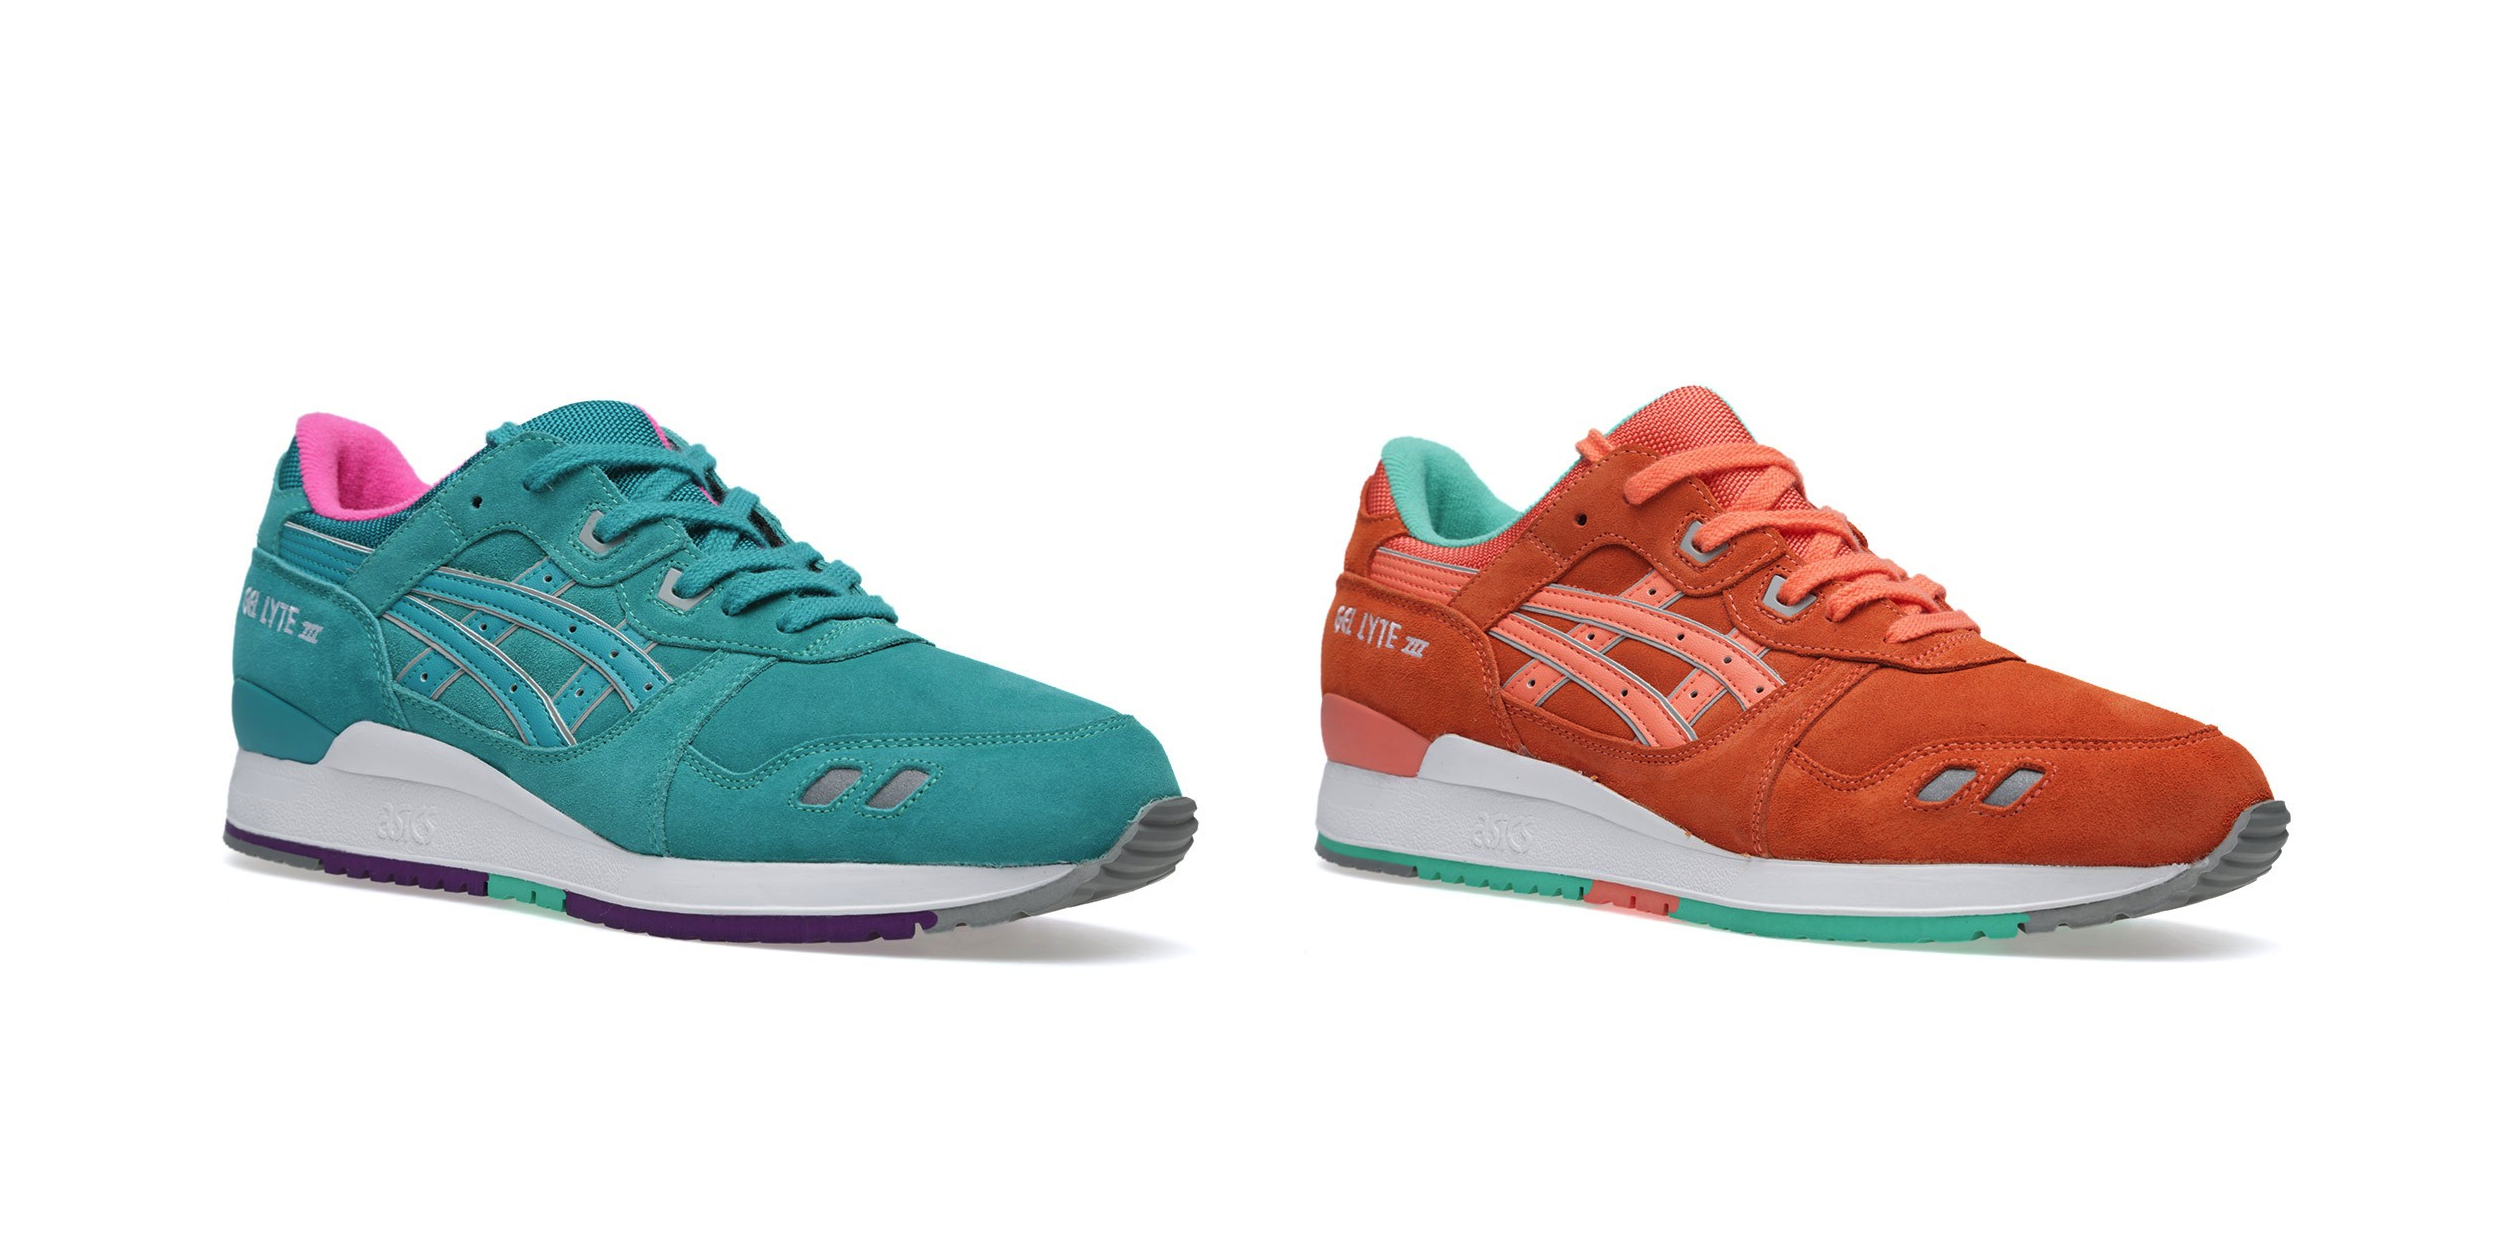 Asics Gel Lyte III All Weather